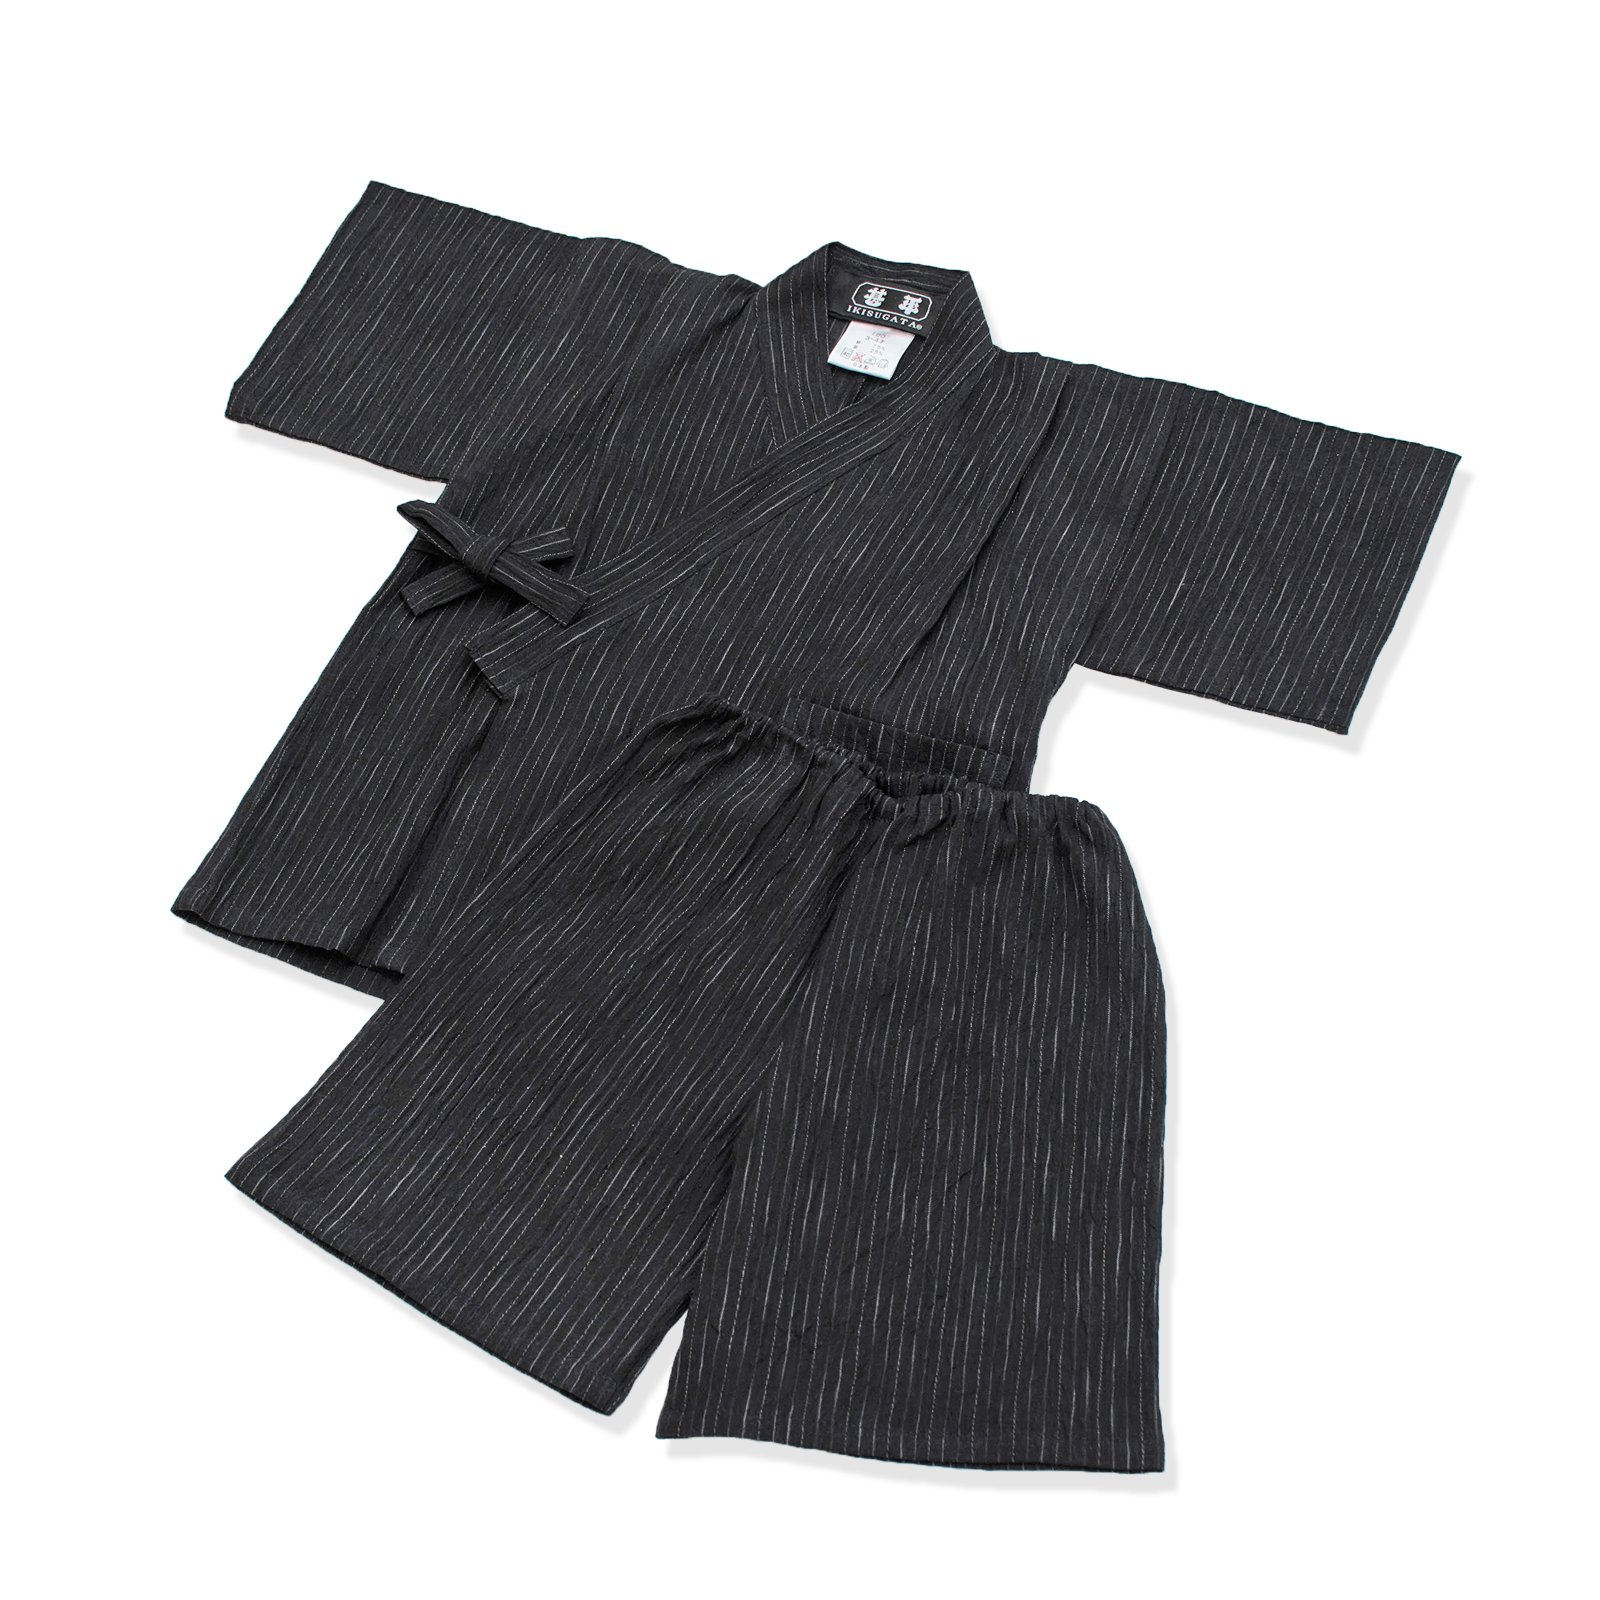 IKISUGATA Kids Jinbei Summertime Casual Wear Omi Chijimi Kasuriori 120 Black by IKISUGATA